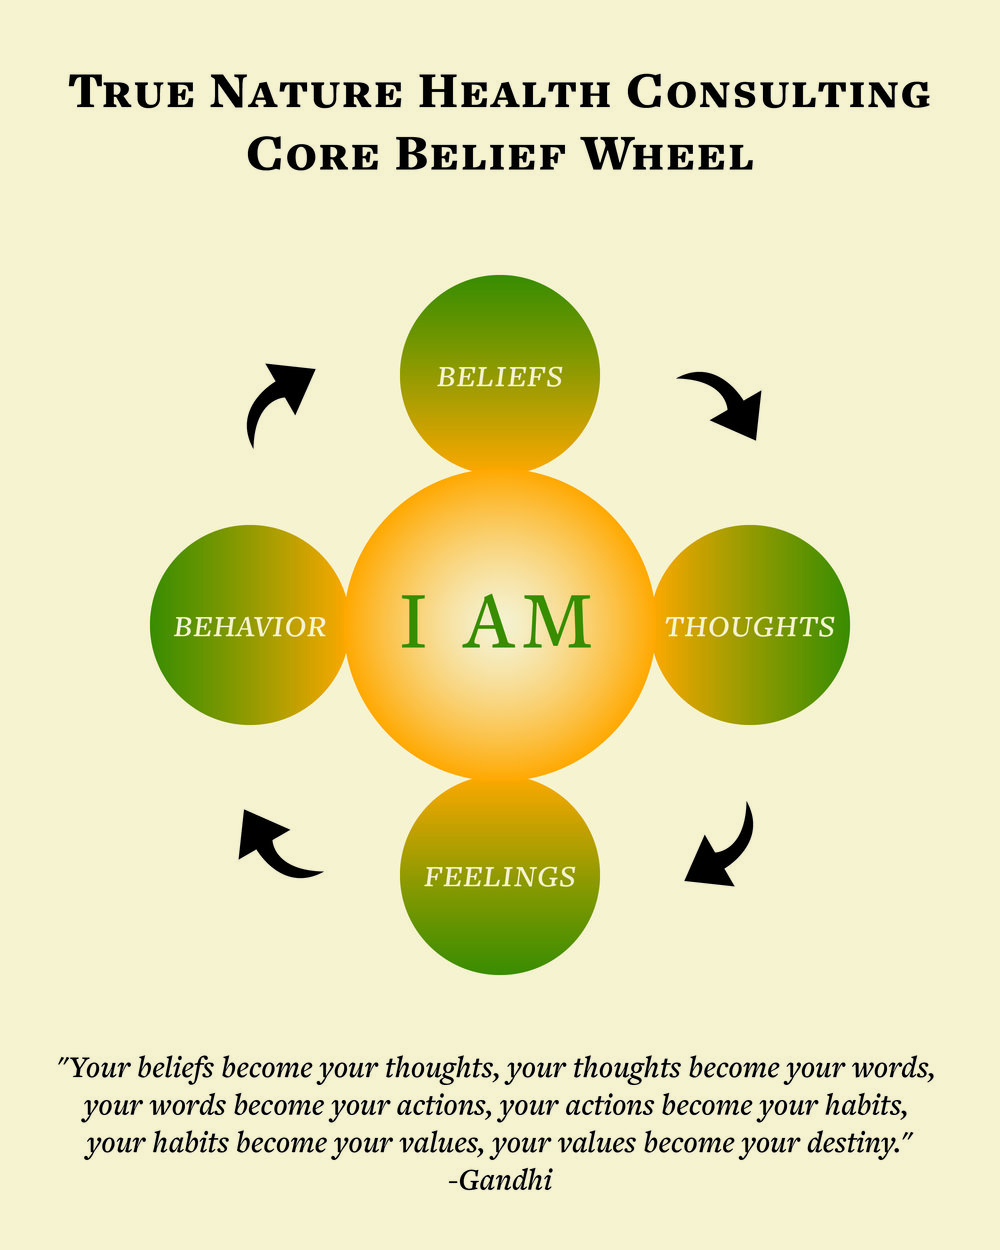 True_Nature_Core_Belief_Wheel.jpg